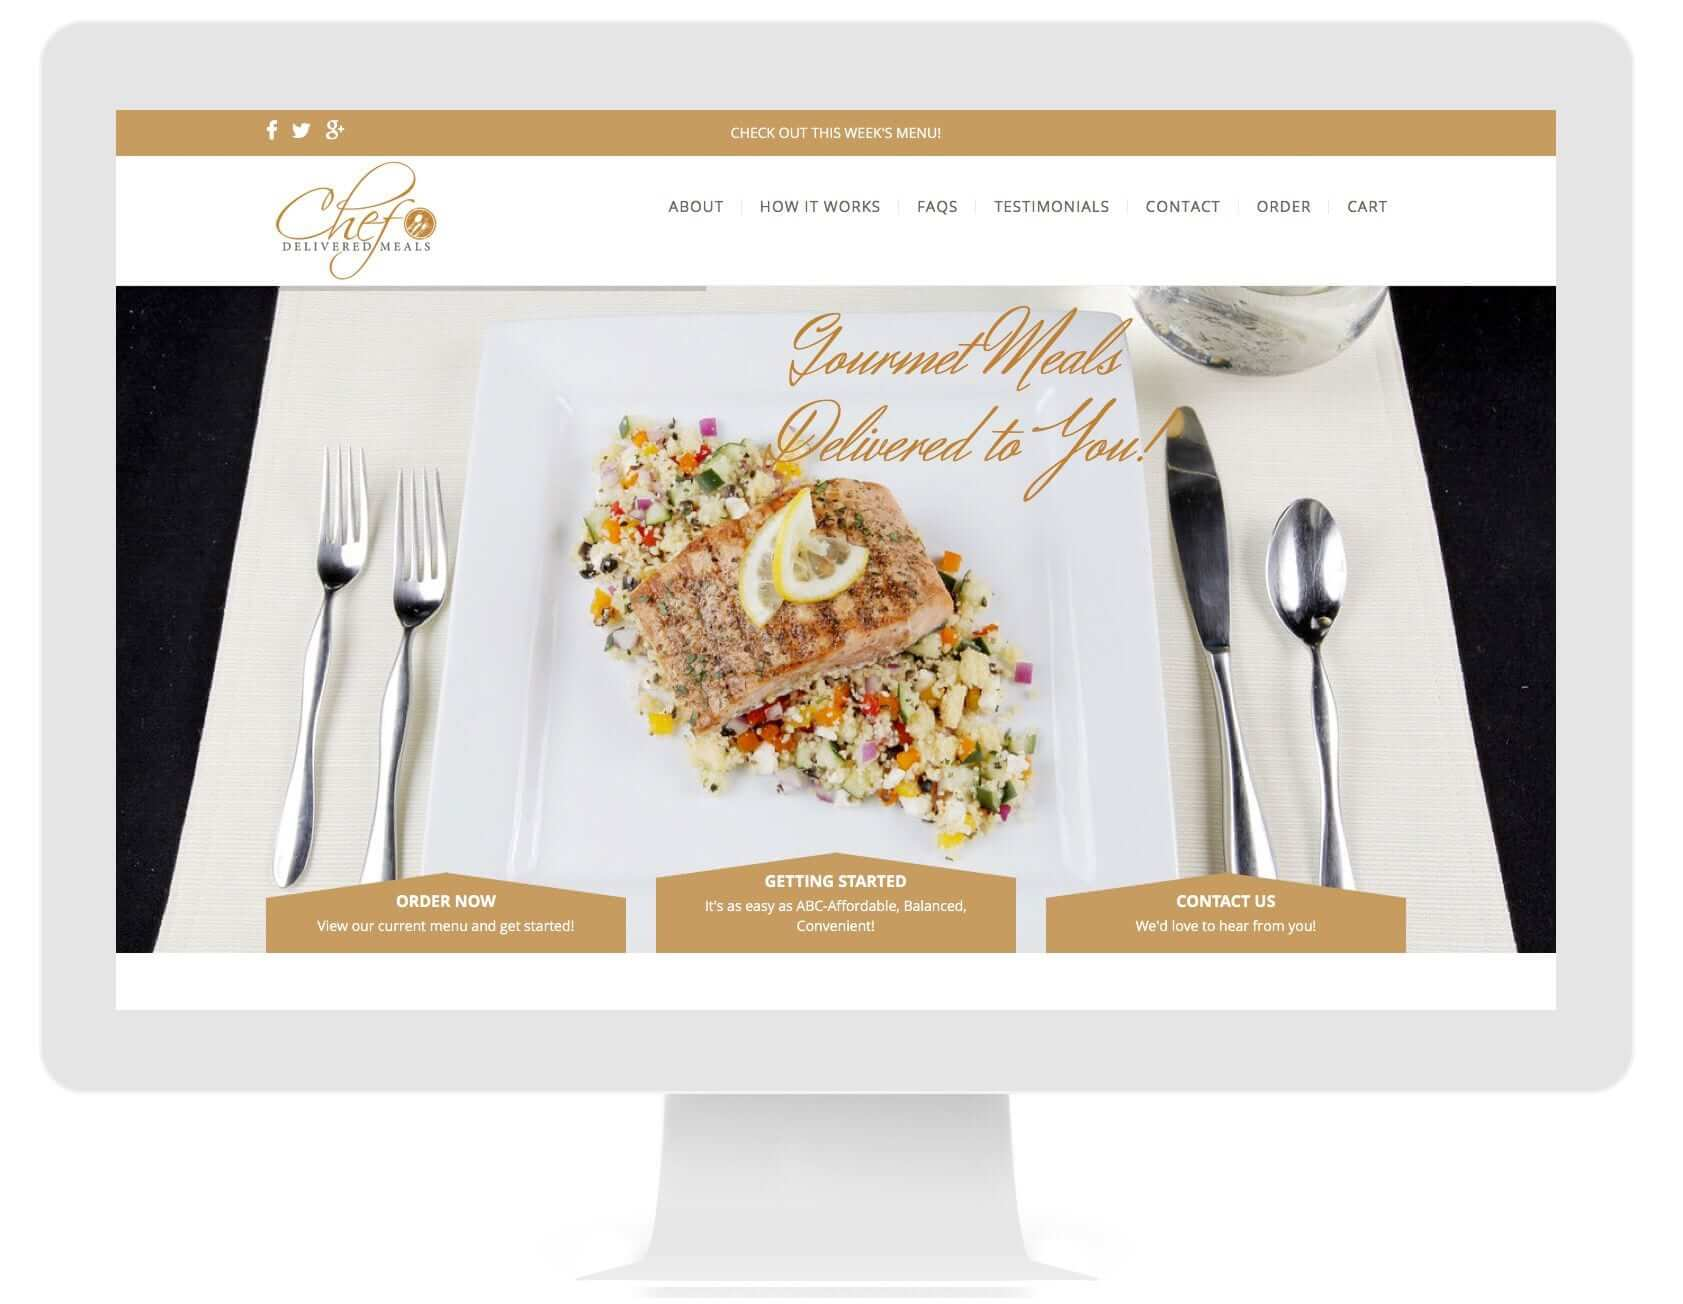 inspry-chef-delivered-meals-screen